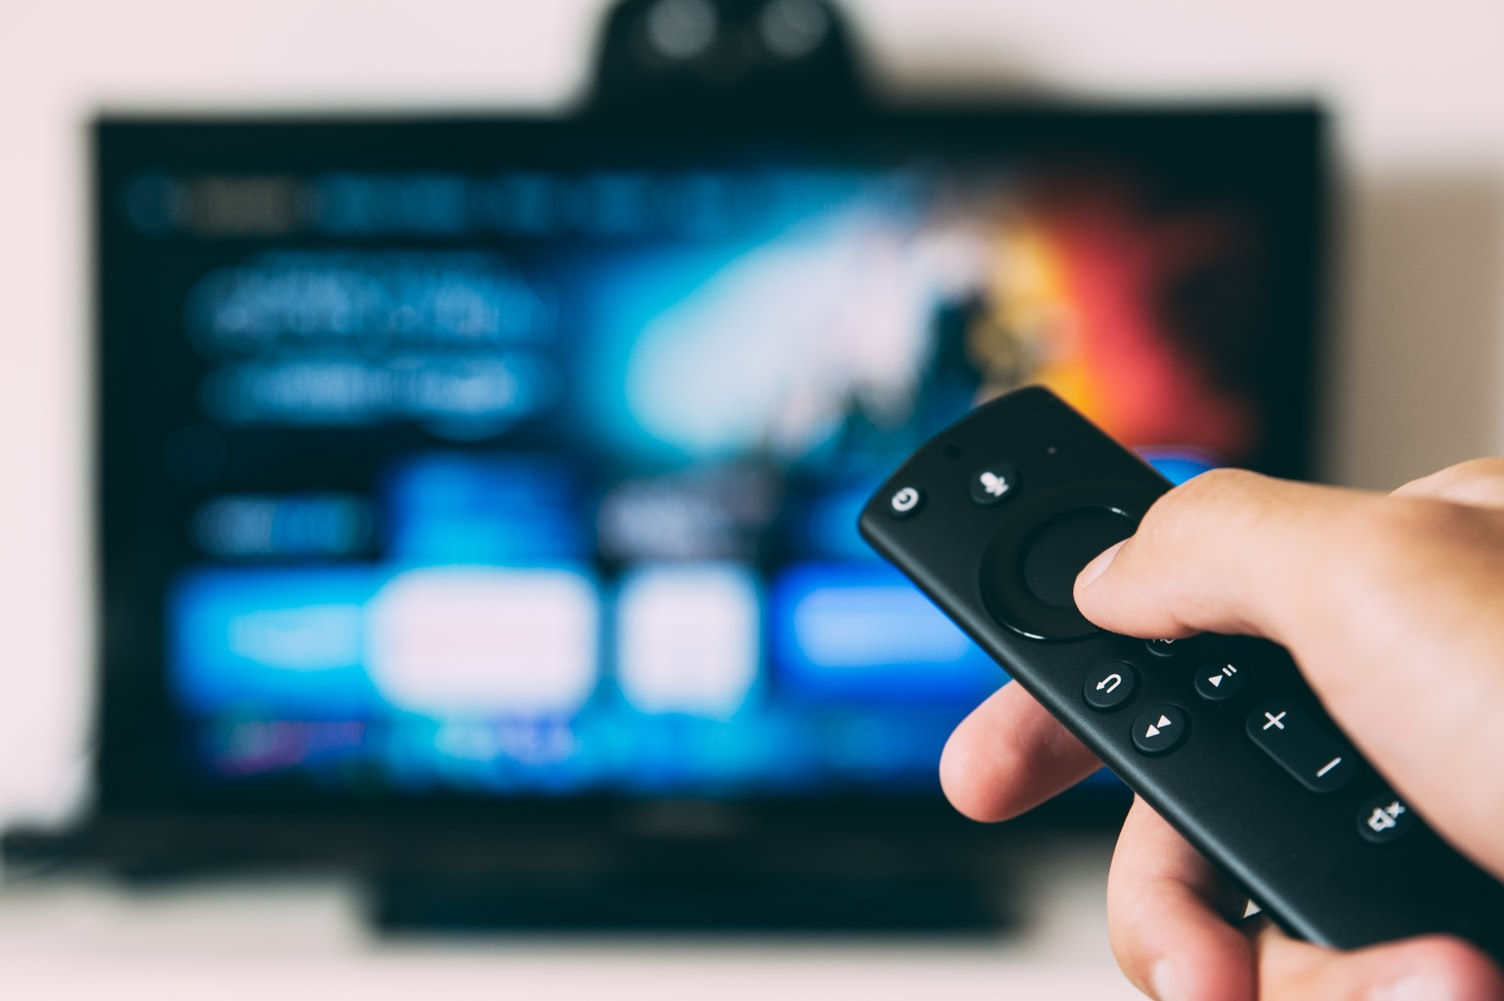 Which is the best 32 inch smart tv in india under Rs 15,000